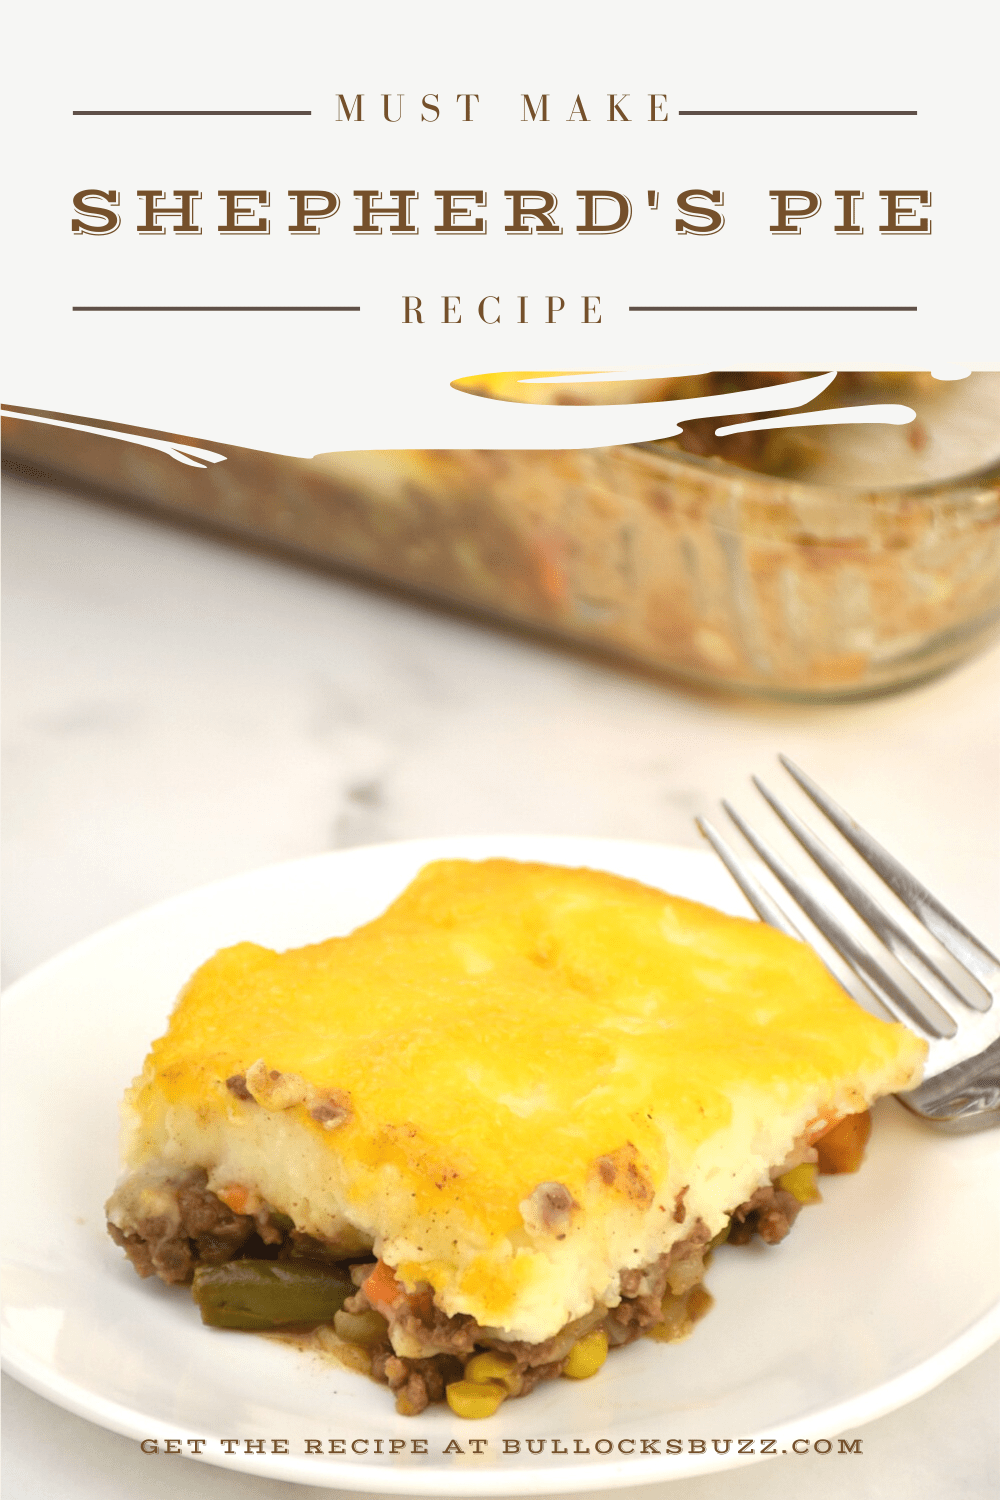 Seasoned ground beef and mixed vegetables are sauteed in a rich gravy, layered in a dish with creamy mashed potatoes, then topped with a layer of cheddar cheese before being baked to perfection in this easy Shepherd's Pie recipe.